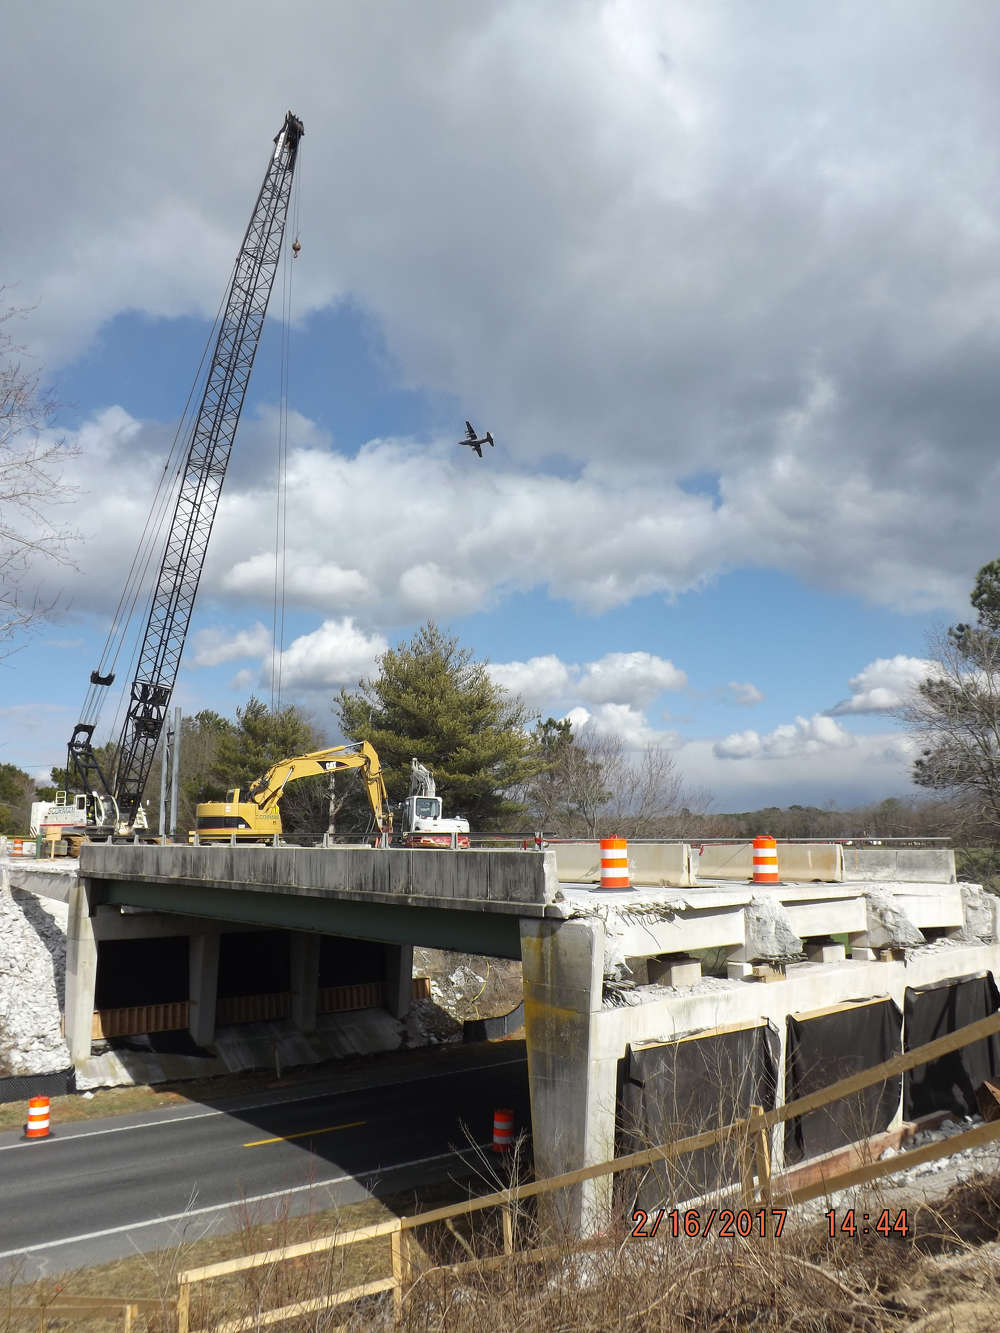 In August, the Maryland Department of Transportation's State Highway Administration (SHA) began a nearly two-year project to rehabilitate 11 bridges on U.S. 13/U.S. 50 (Salisbury Bypass).